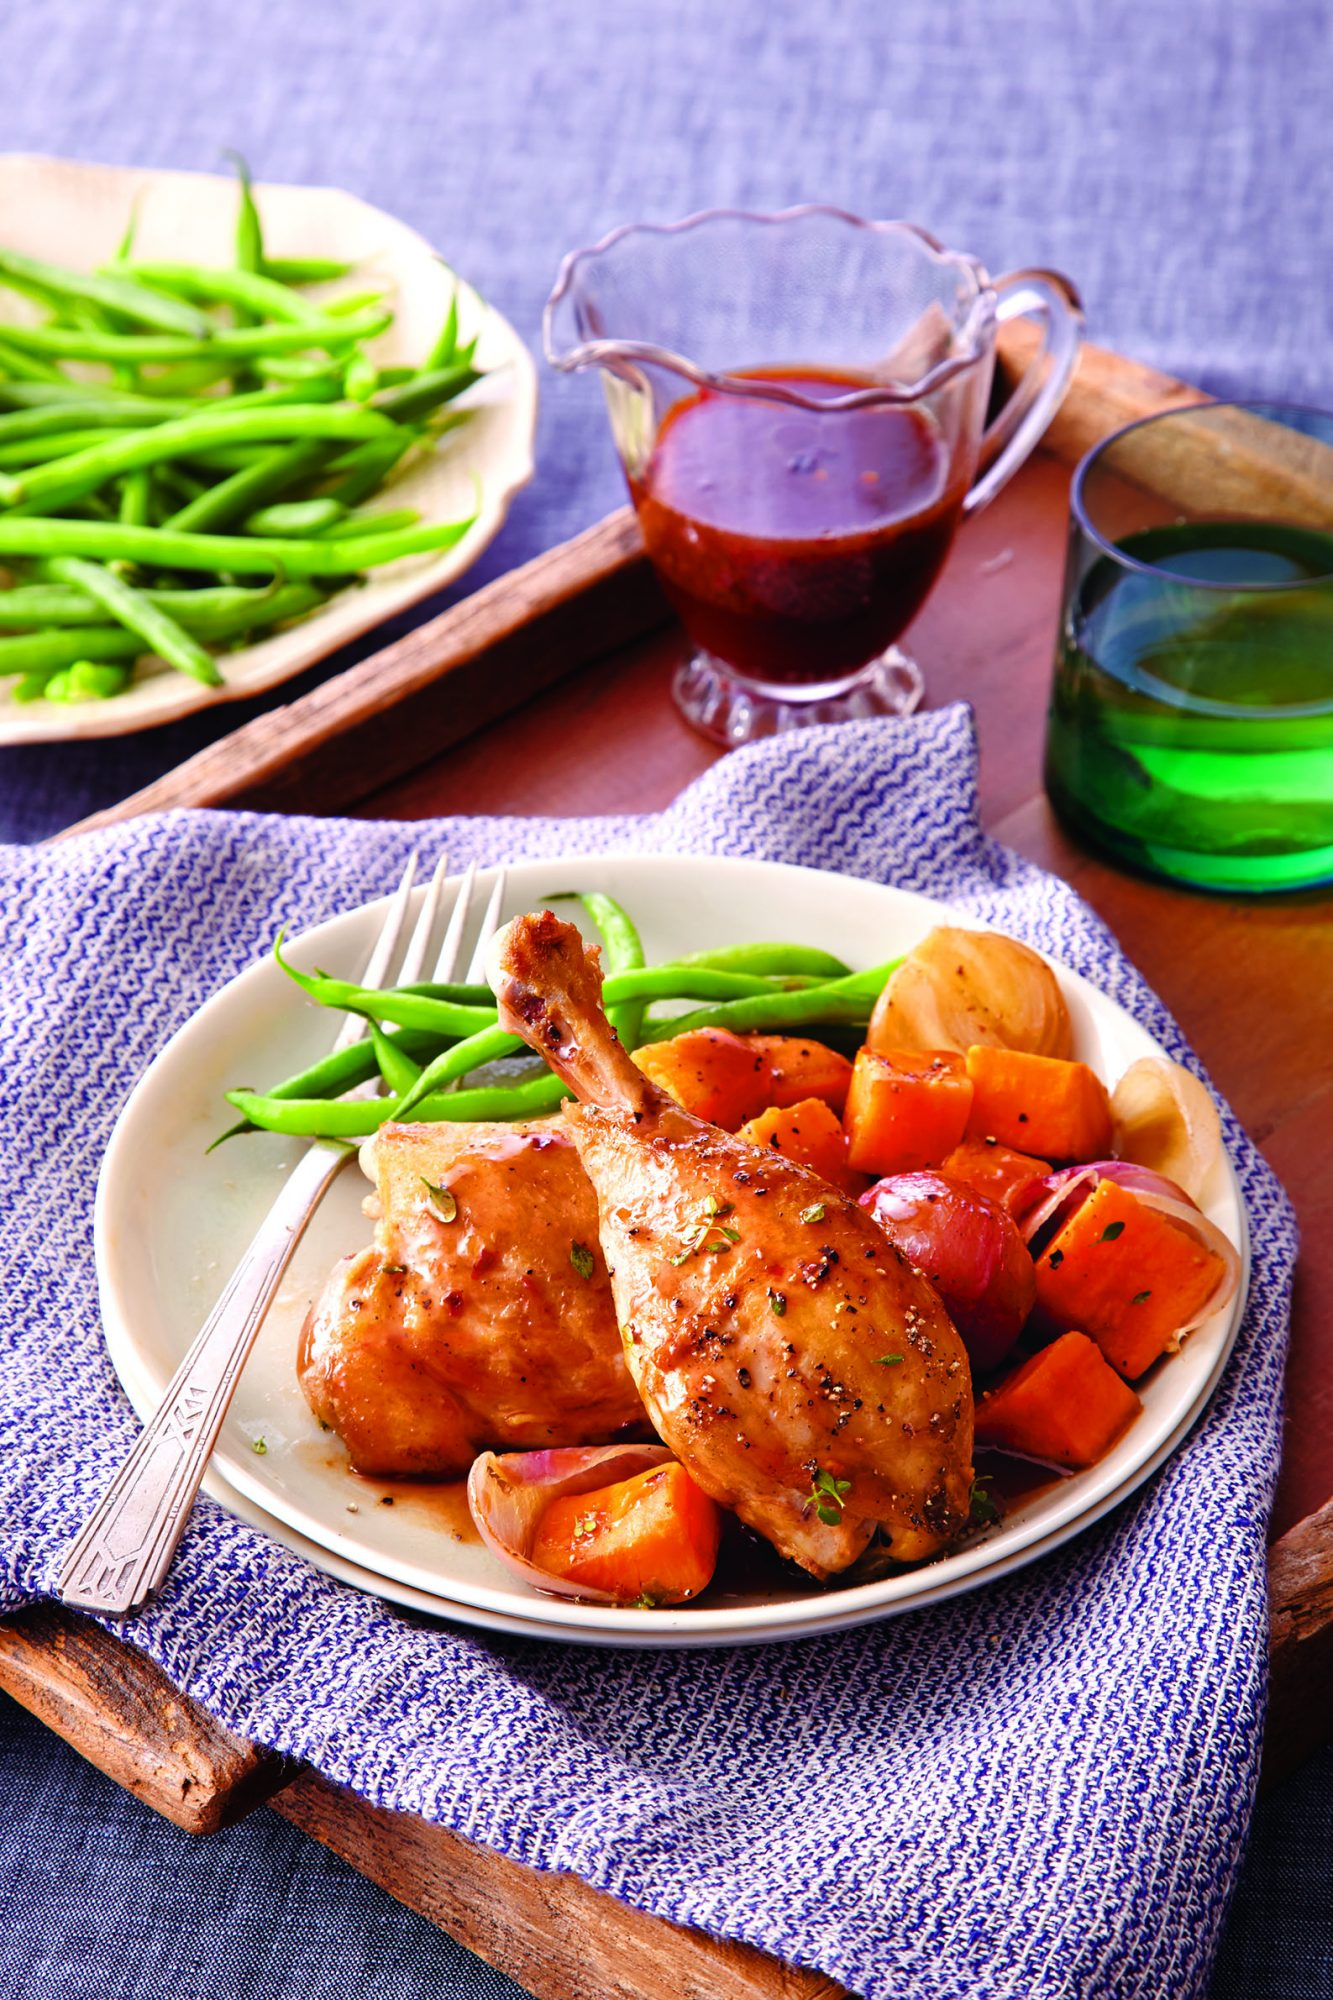 Chicken and Sweet Potatoes with Raspberry-Balsamic Reduction